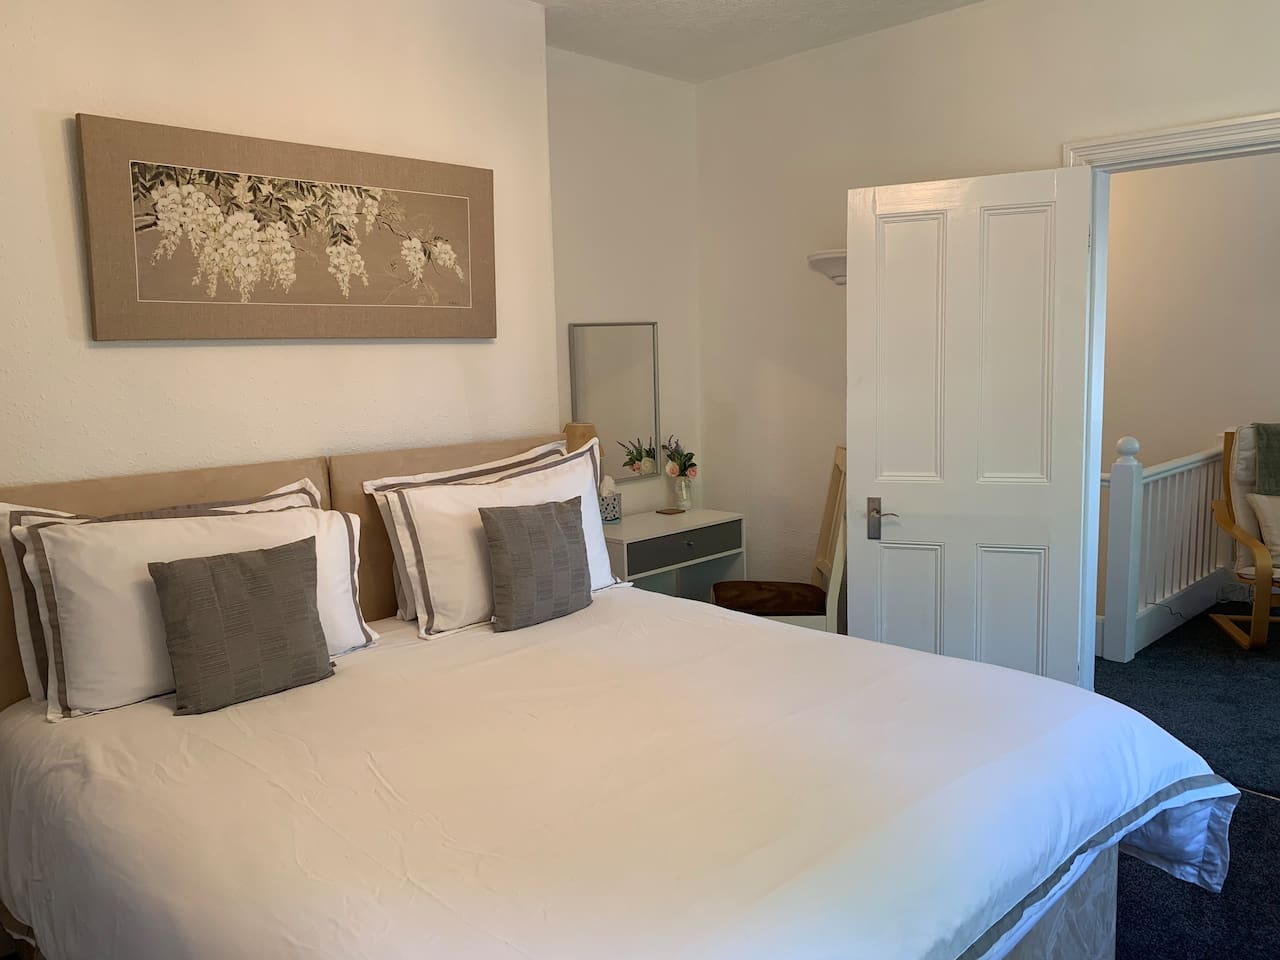 Welcome to our gorgeous apartment. It is fantastic value, which  combined with the high quality and central location with off road parking, means we are hugely popular. Superhosts for over 3 years! We would be delighted to see you soon.